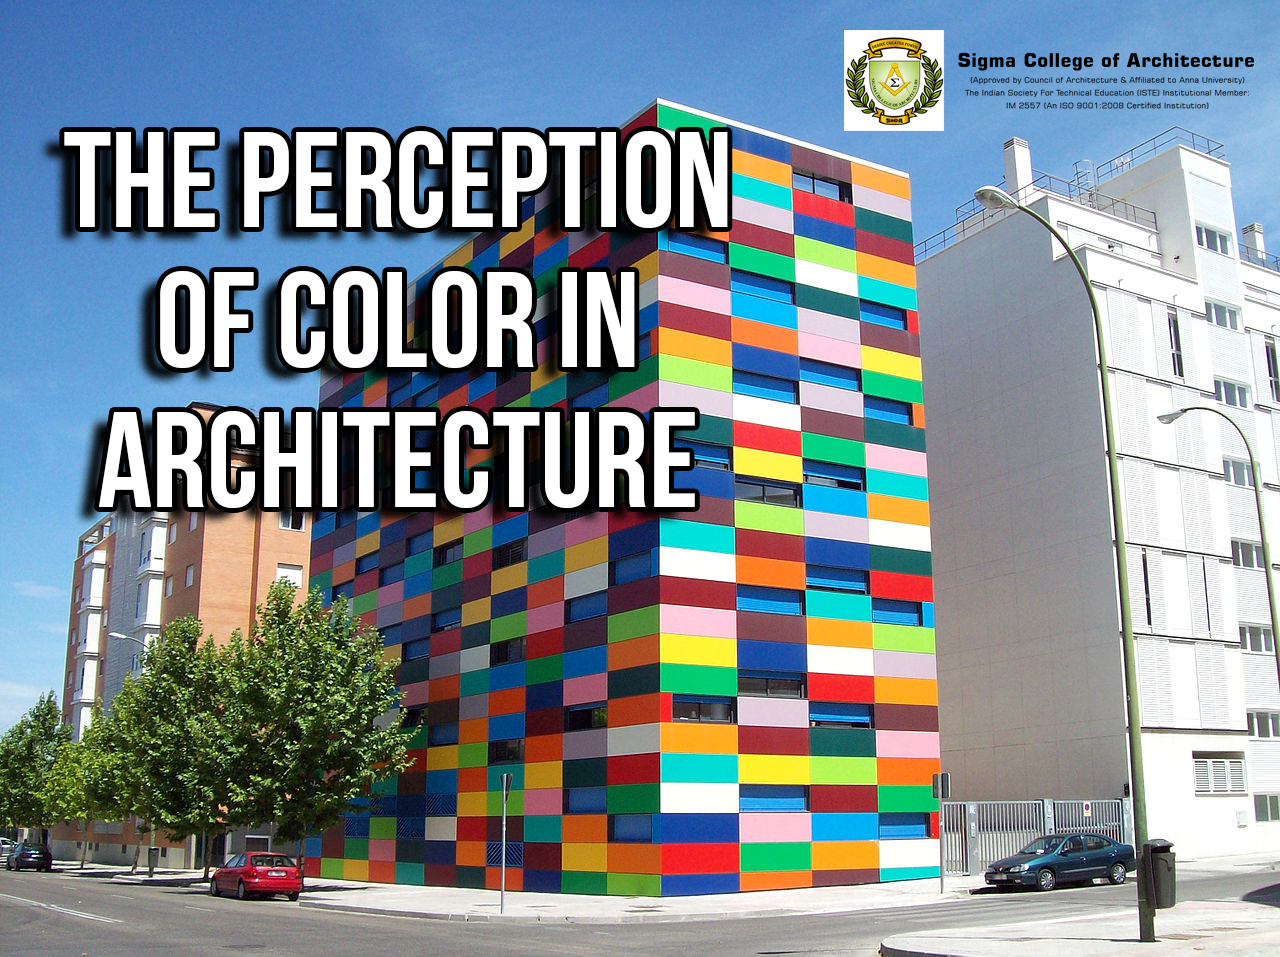 The Perception of Color in Architecture